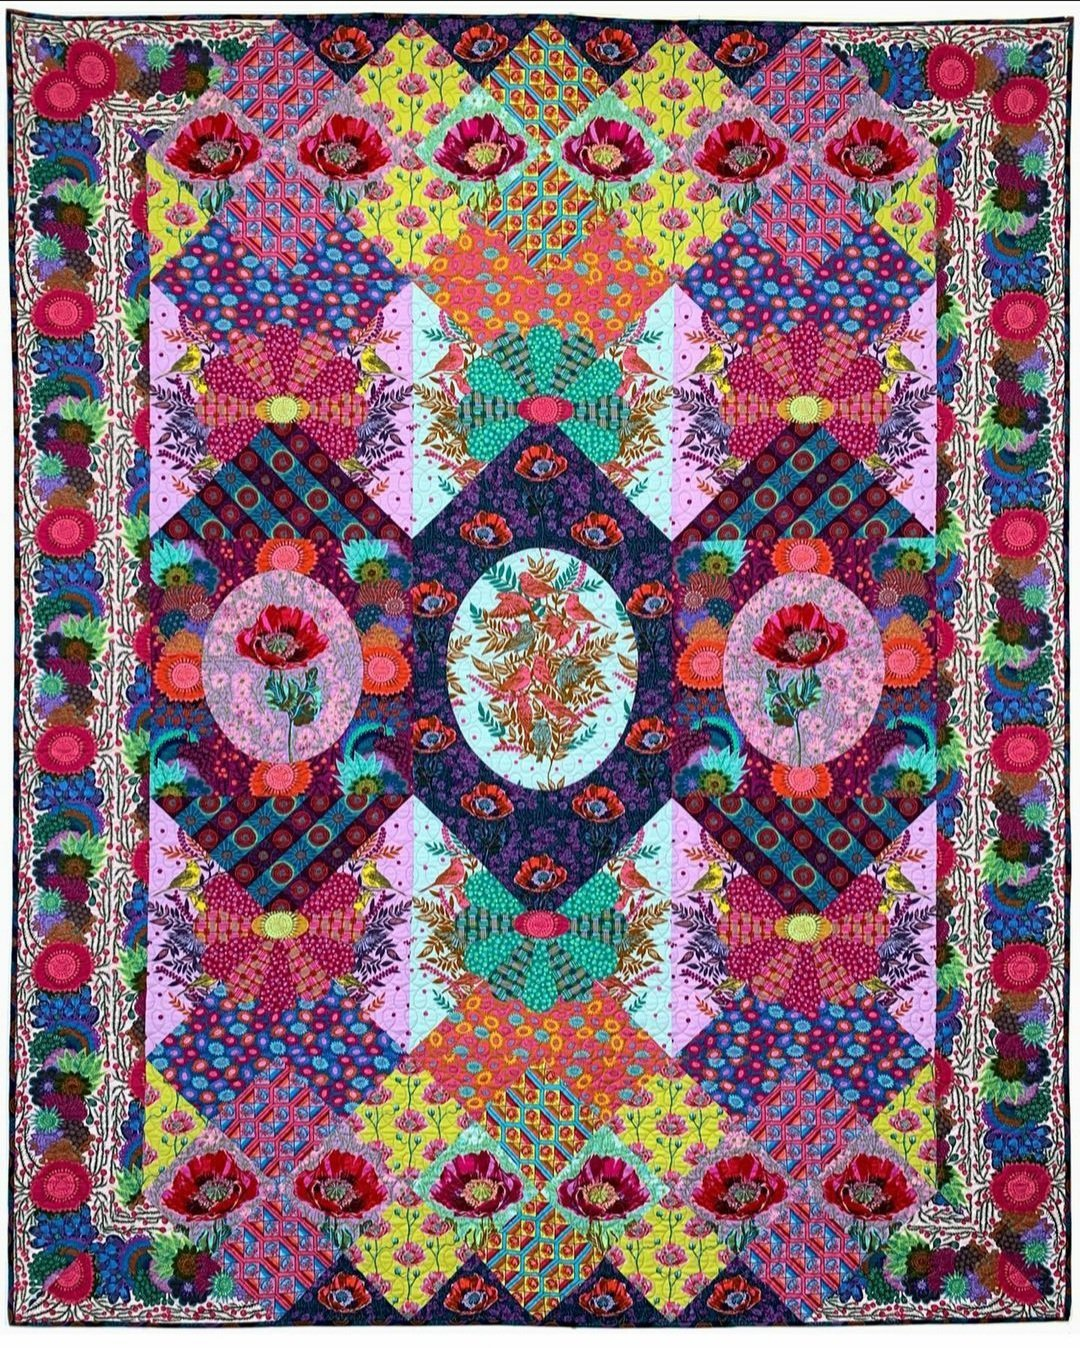 PRE-ORDER - The Visions Quilt Kit Club - Anna Maria Horner